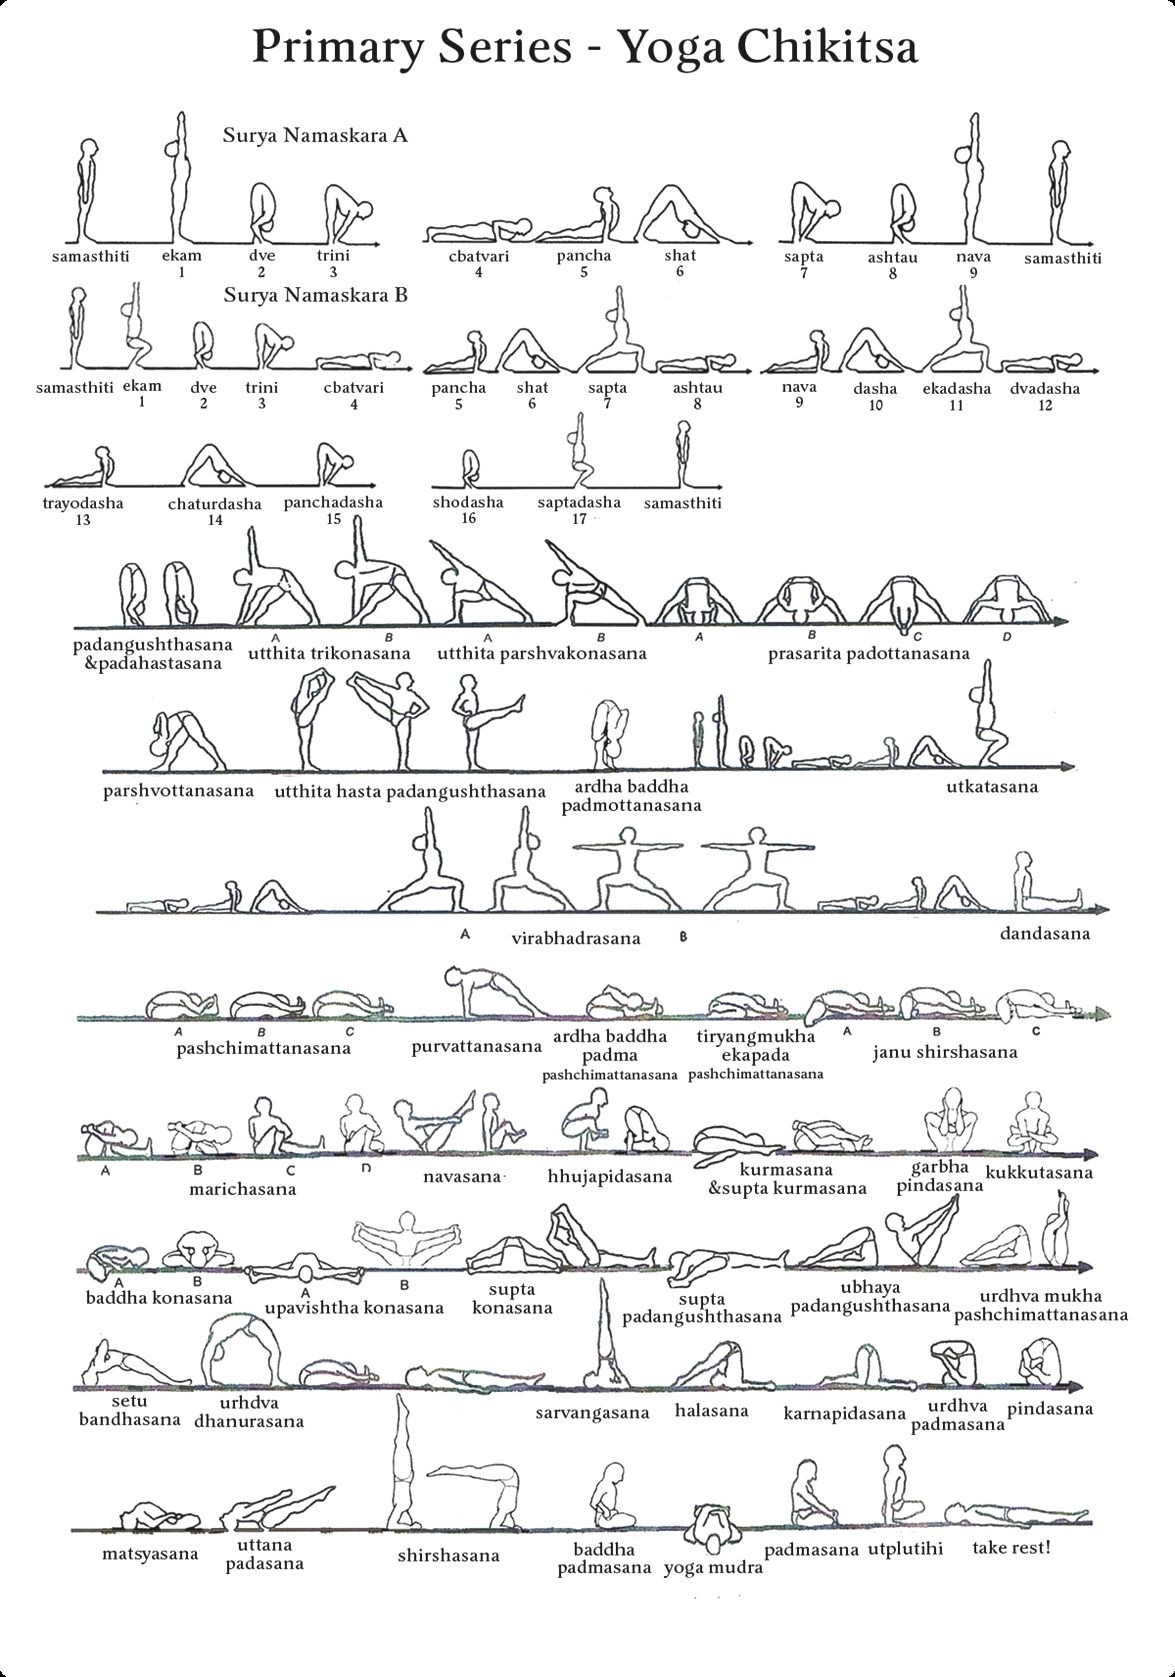 Classes De Yoga Ashtanga Yoga Vinyasa Yoga Sequence Ashtanga Yoga Primary Series